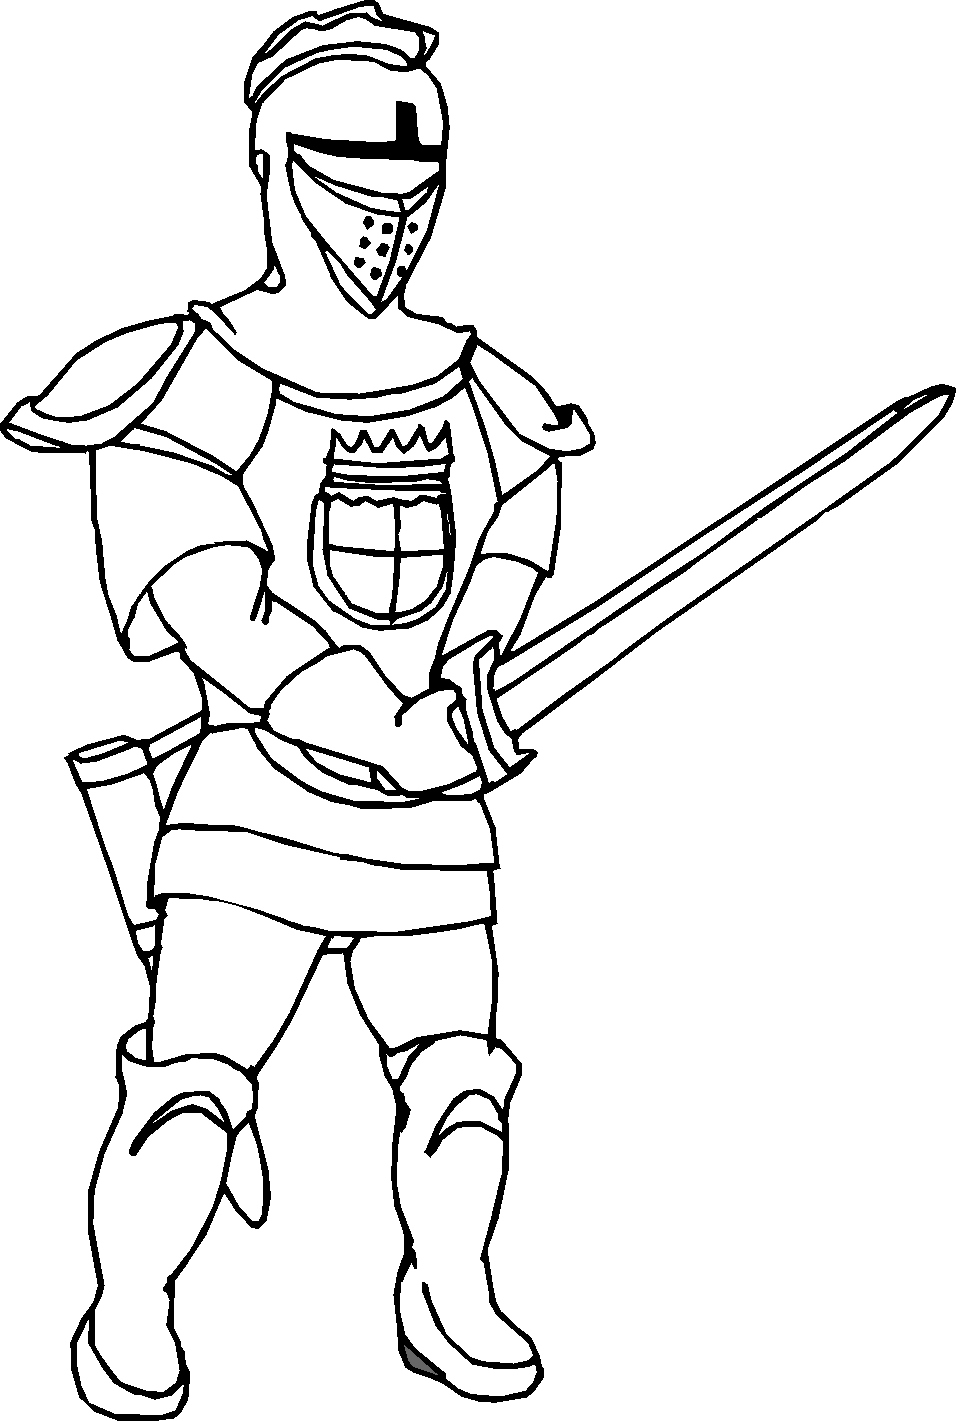 956x1421 Knight Coloring Pages Luxury Free With Knights Horses Coloring